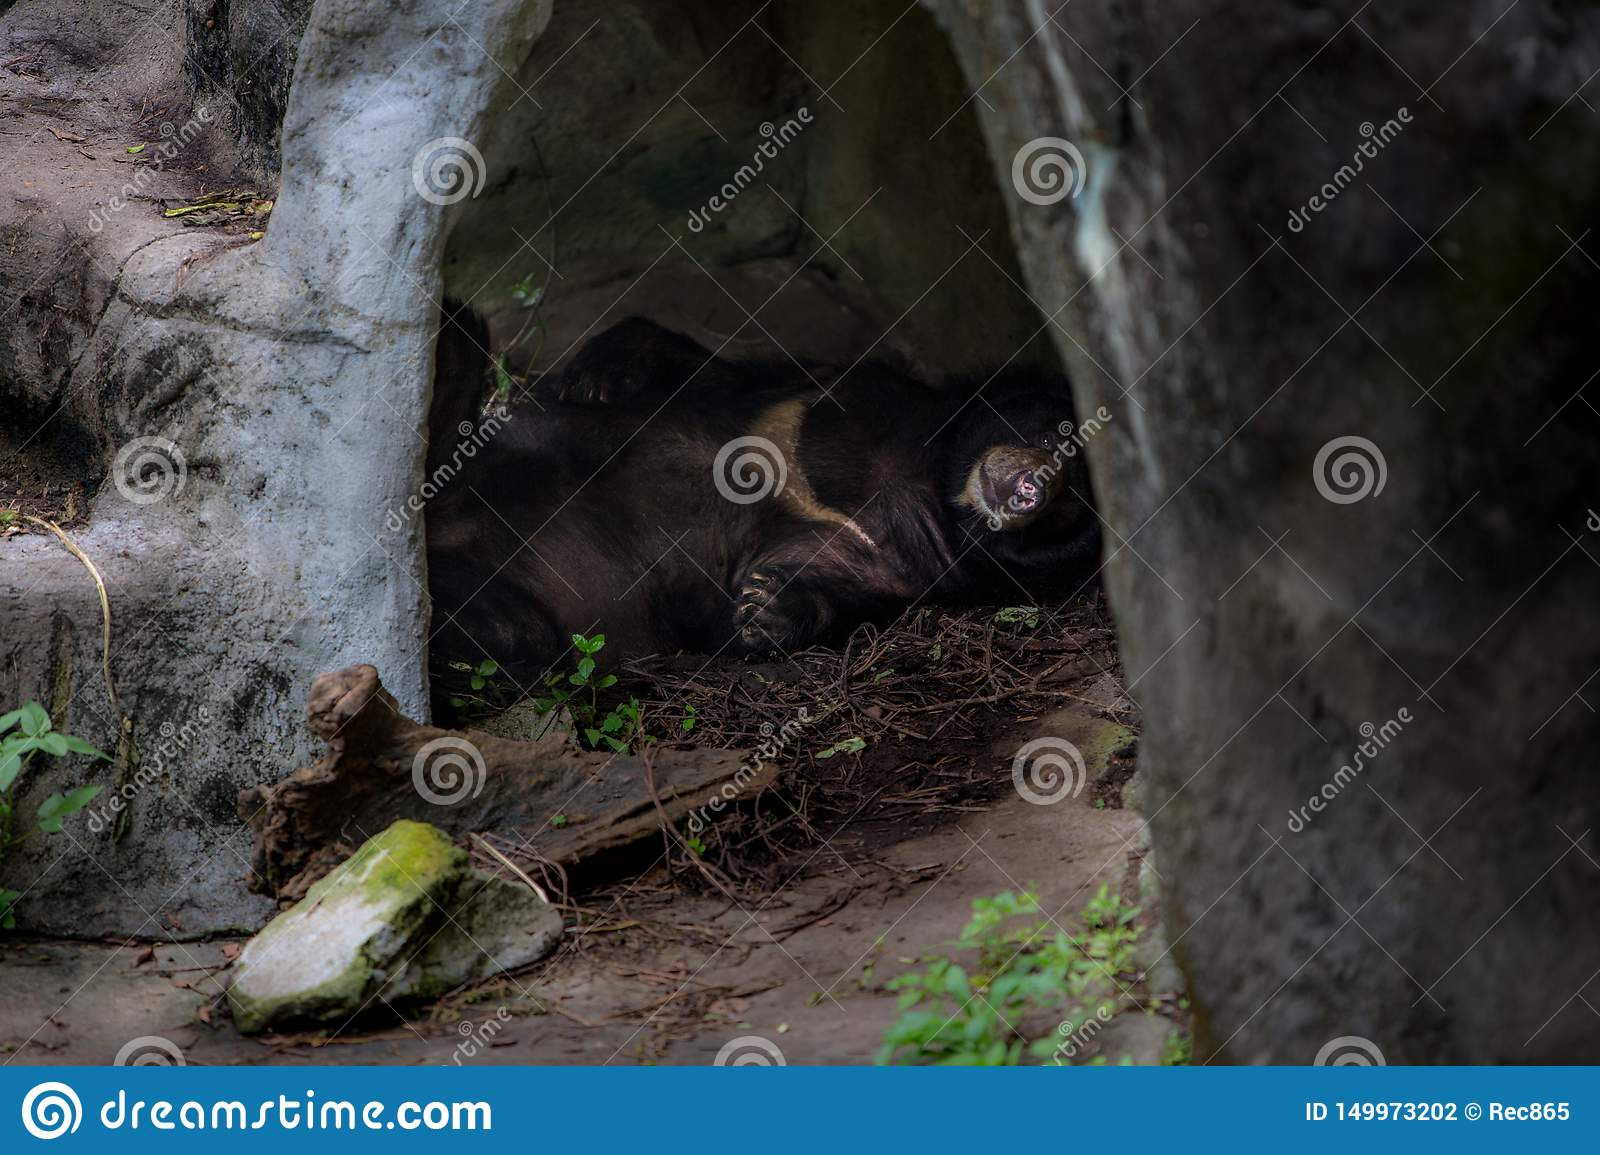 An adult Formosa Black Bear sleeping in the cave